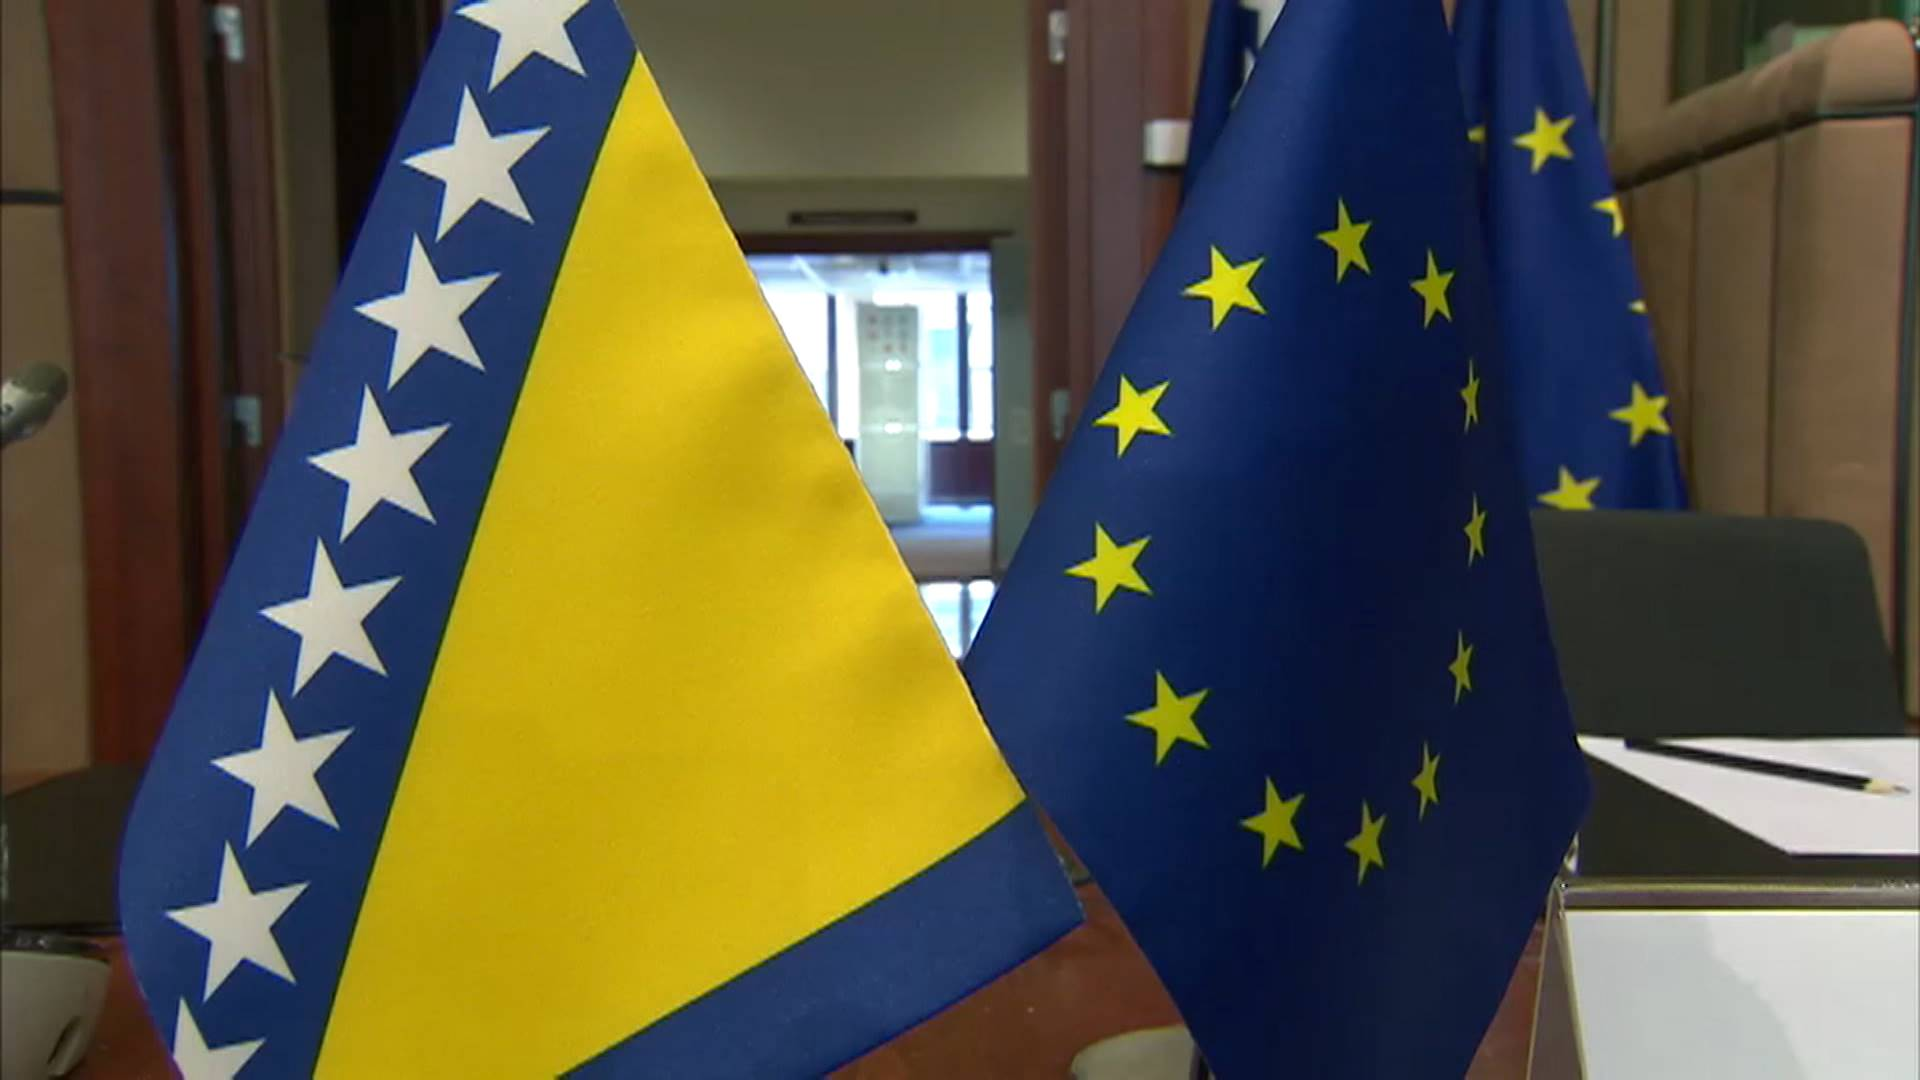 BiH: International community calls on BiH authorities to work on improvements in educational system